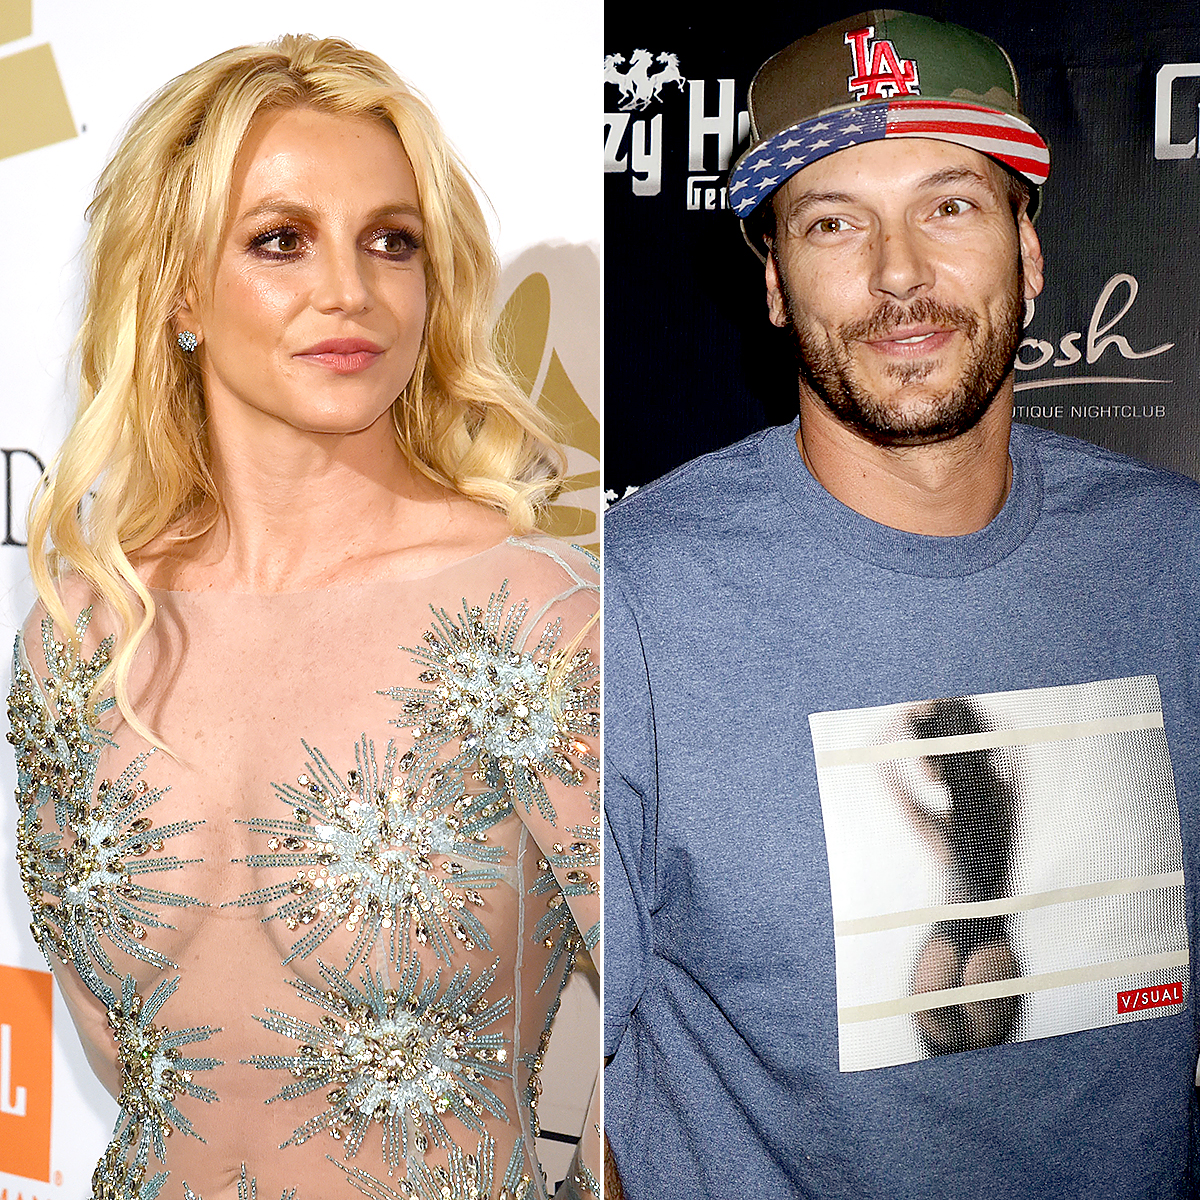 Communication on this topic: Donatella versace tits, rap-god-kevin-federline-is-back/